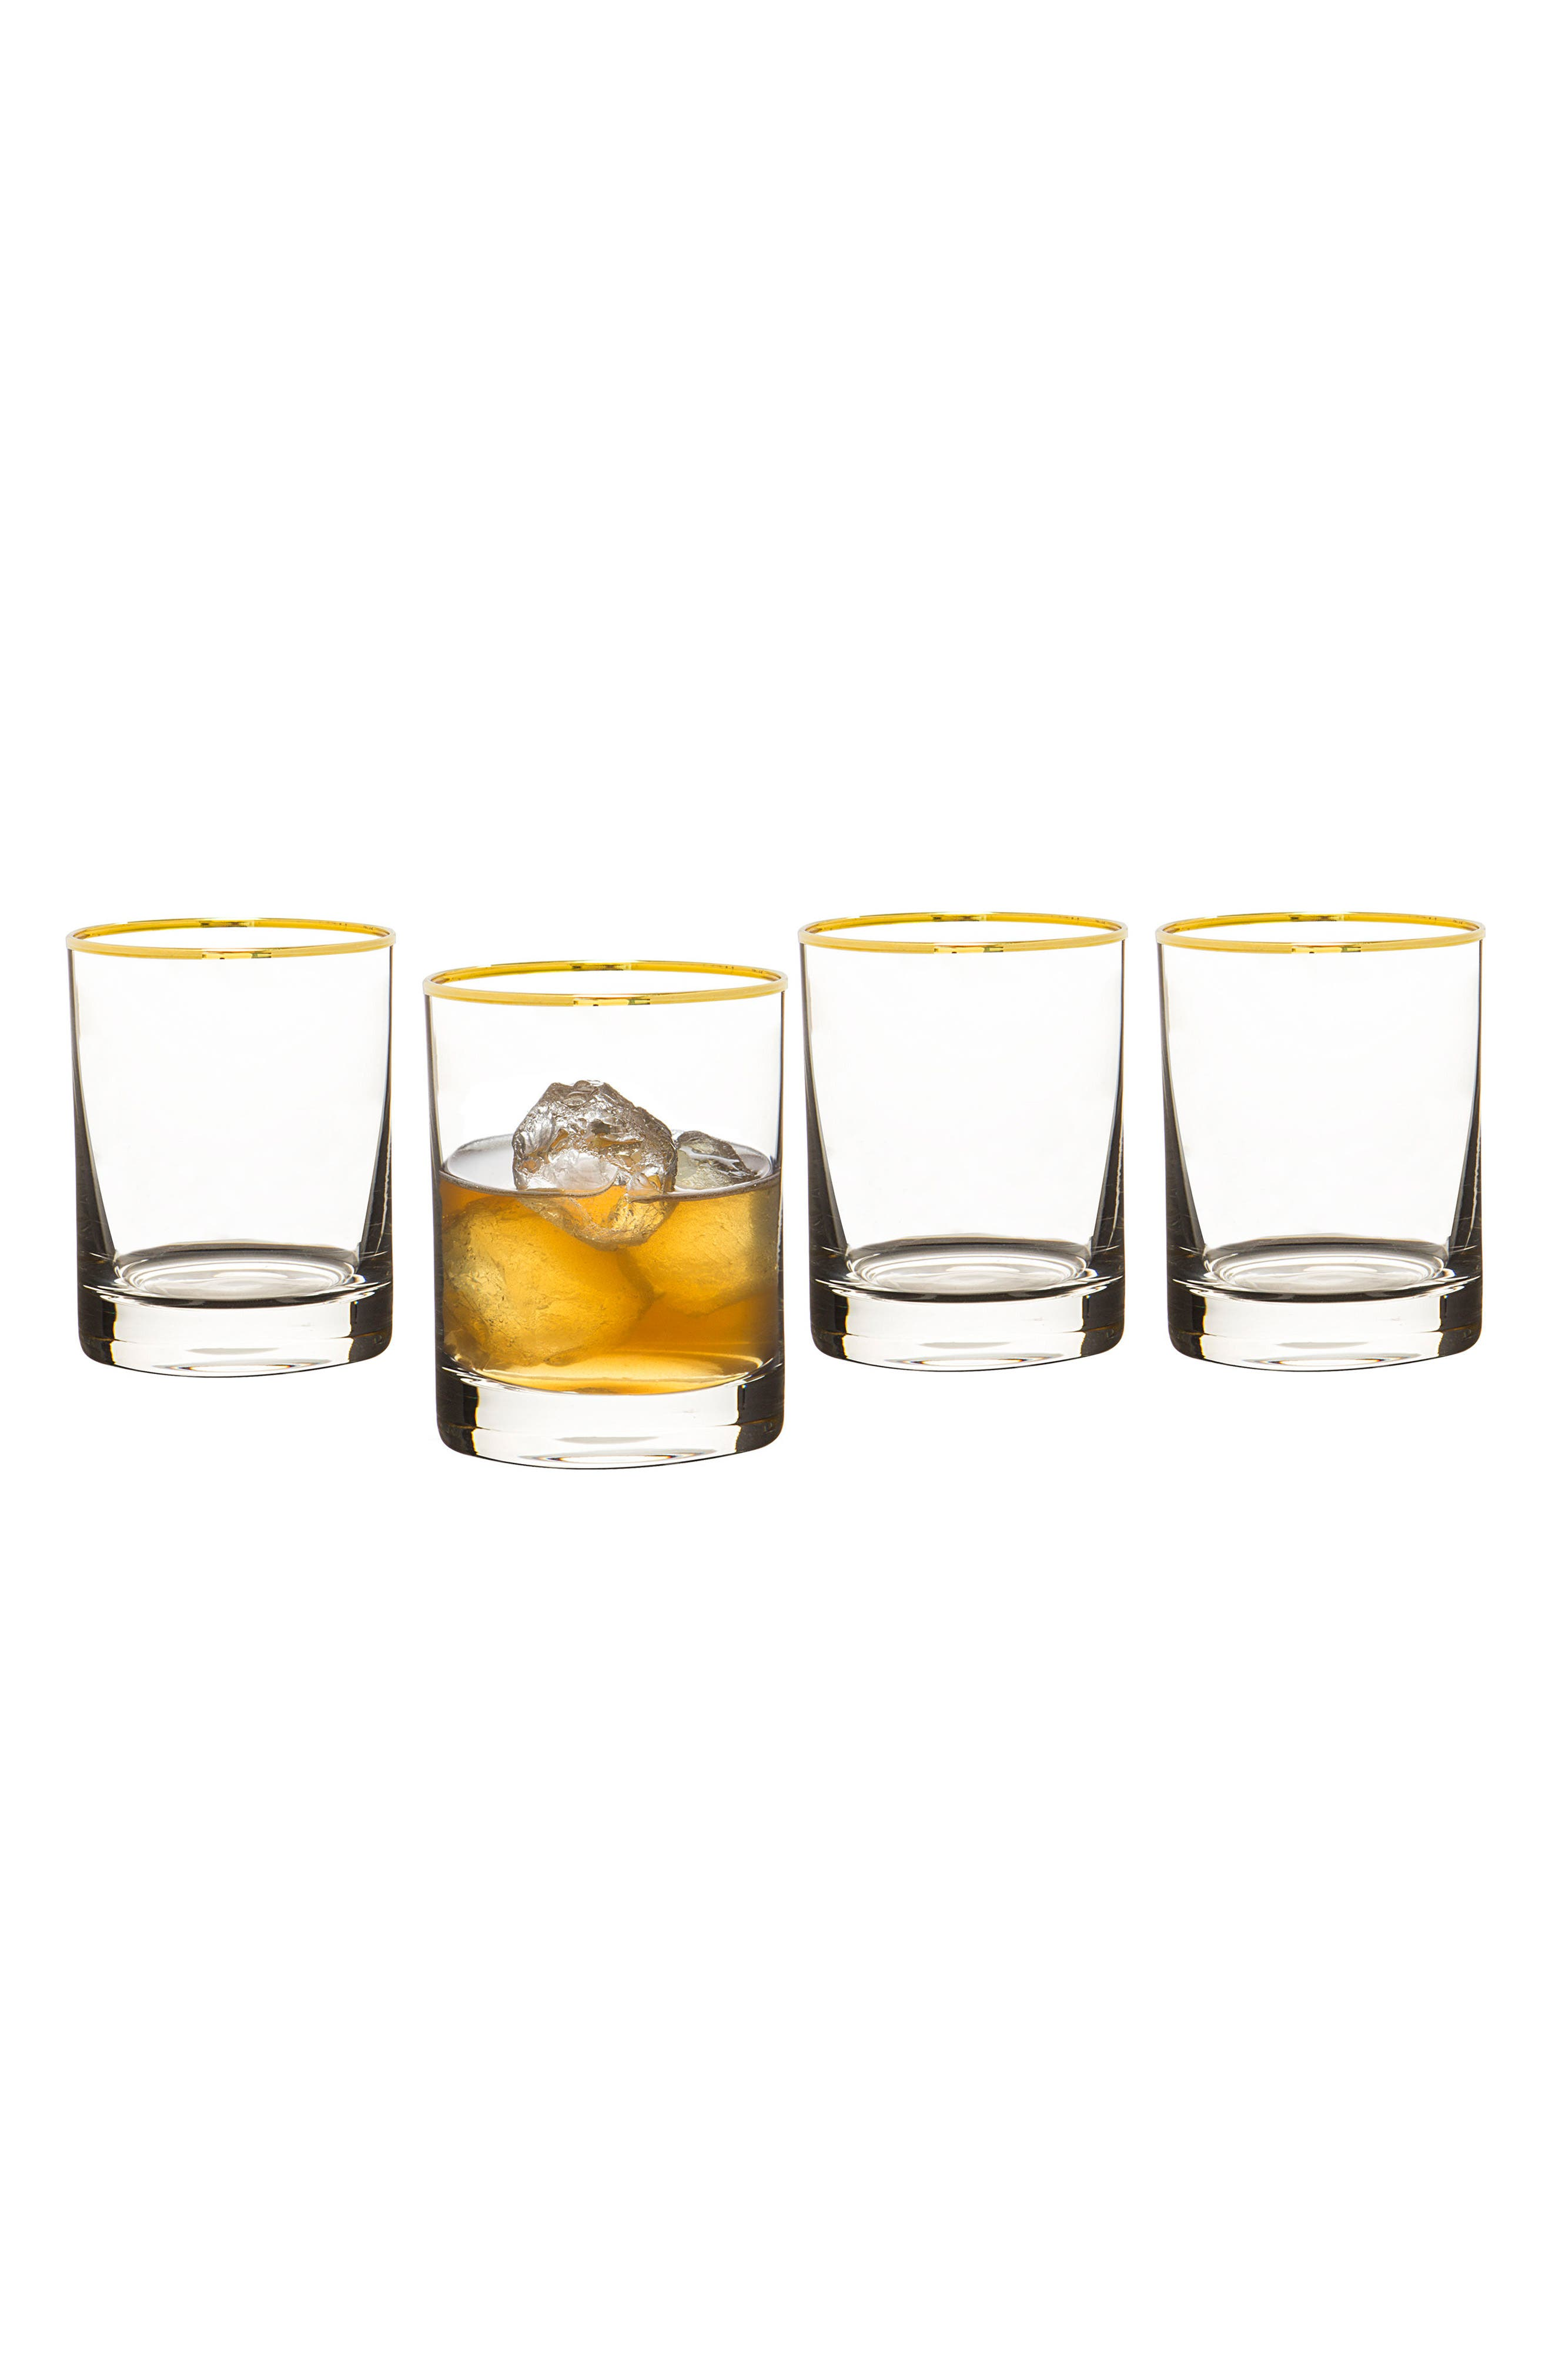 Cathy's Concepts Monogram Set of 4 Double Old Fashioned Glasses